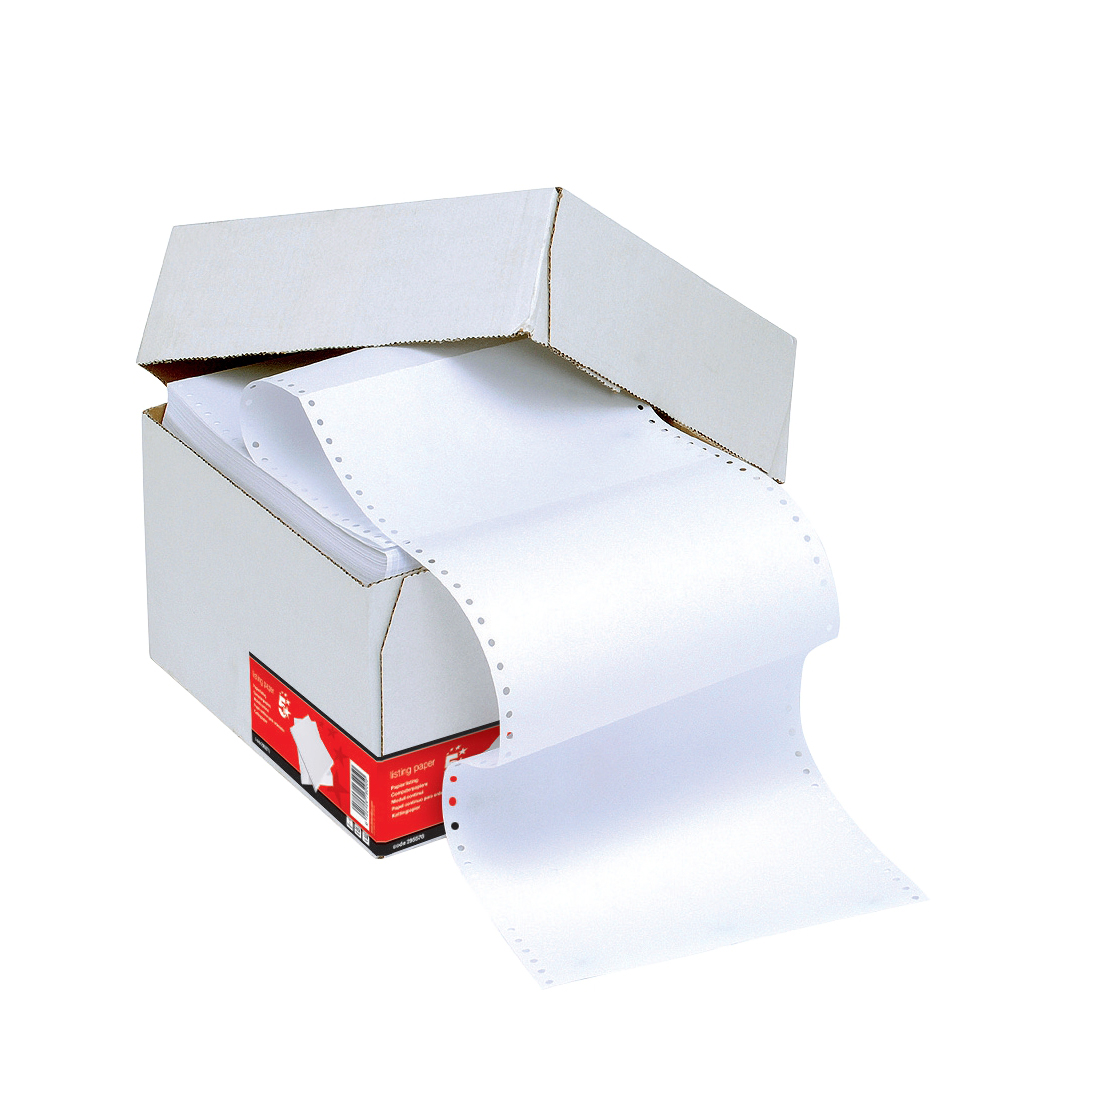 Listing Paper 5 Star Office Listing Paper 1-Part Micro-perforated 70gsm A4 Plain 2000 Sheets